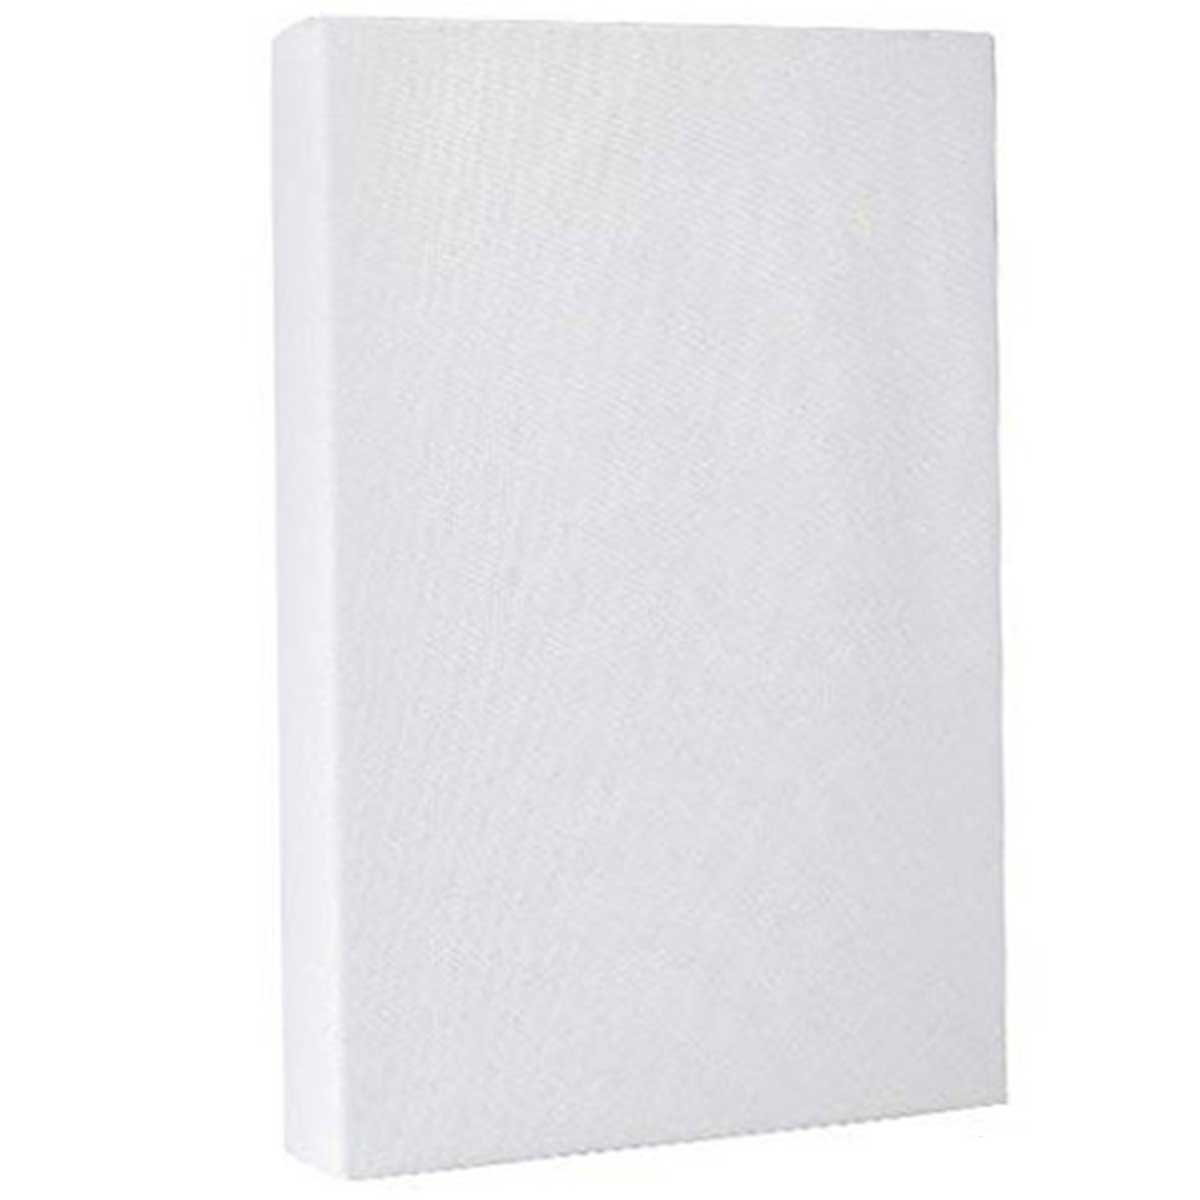 Stretched Canvas Board (15X22 Inch)